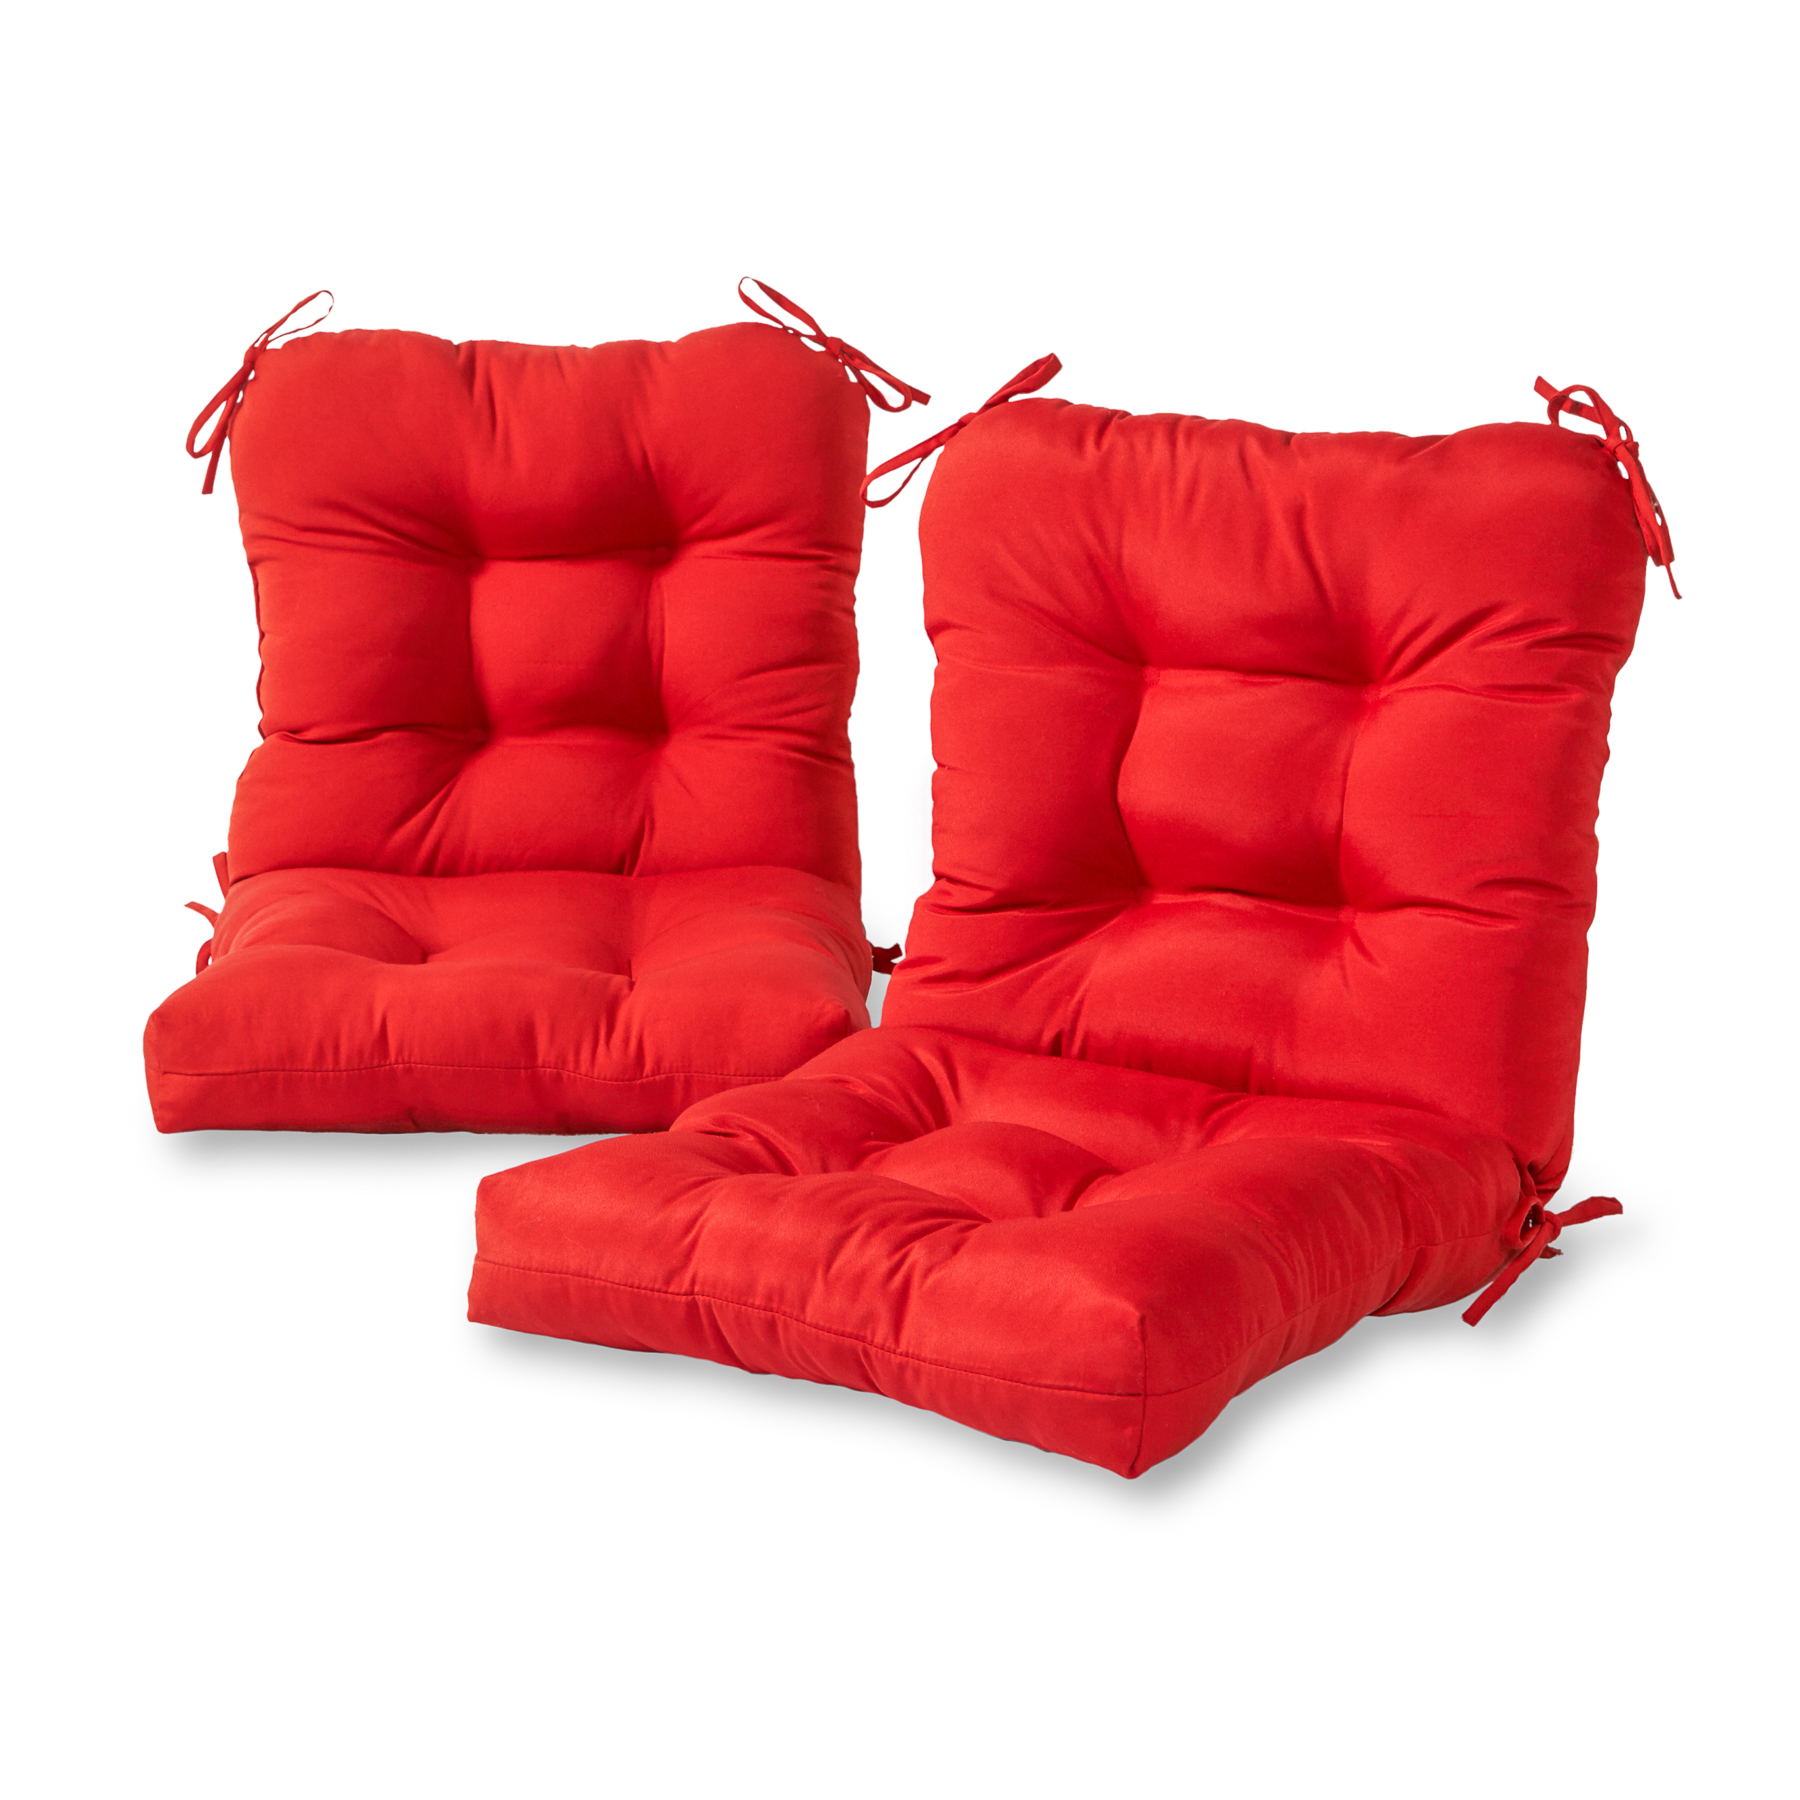 red outdoor chair pillows fold up lawn chairs greendale home fashions set of two seat back